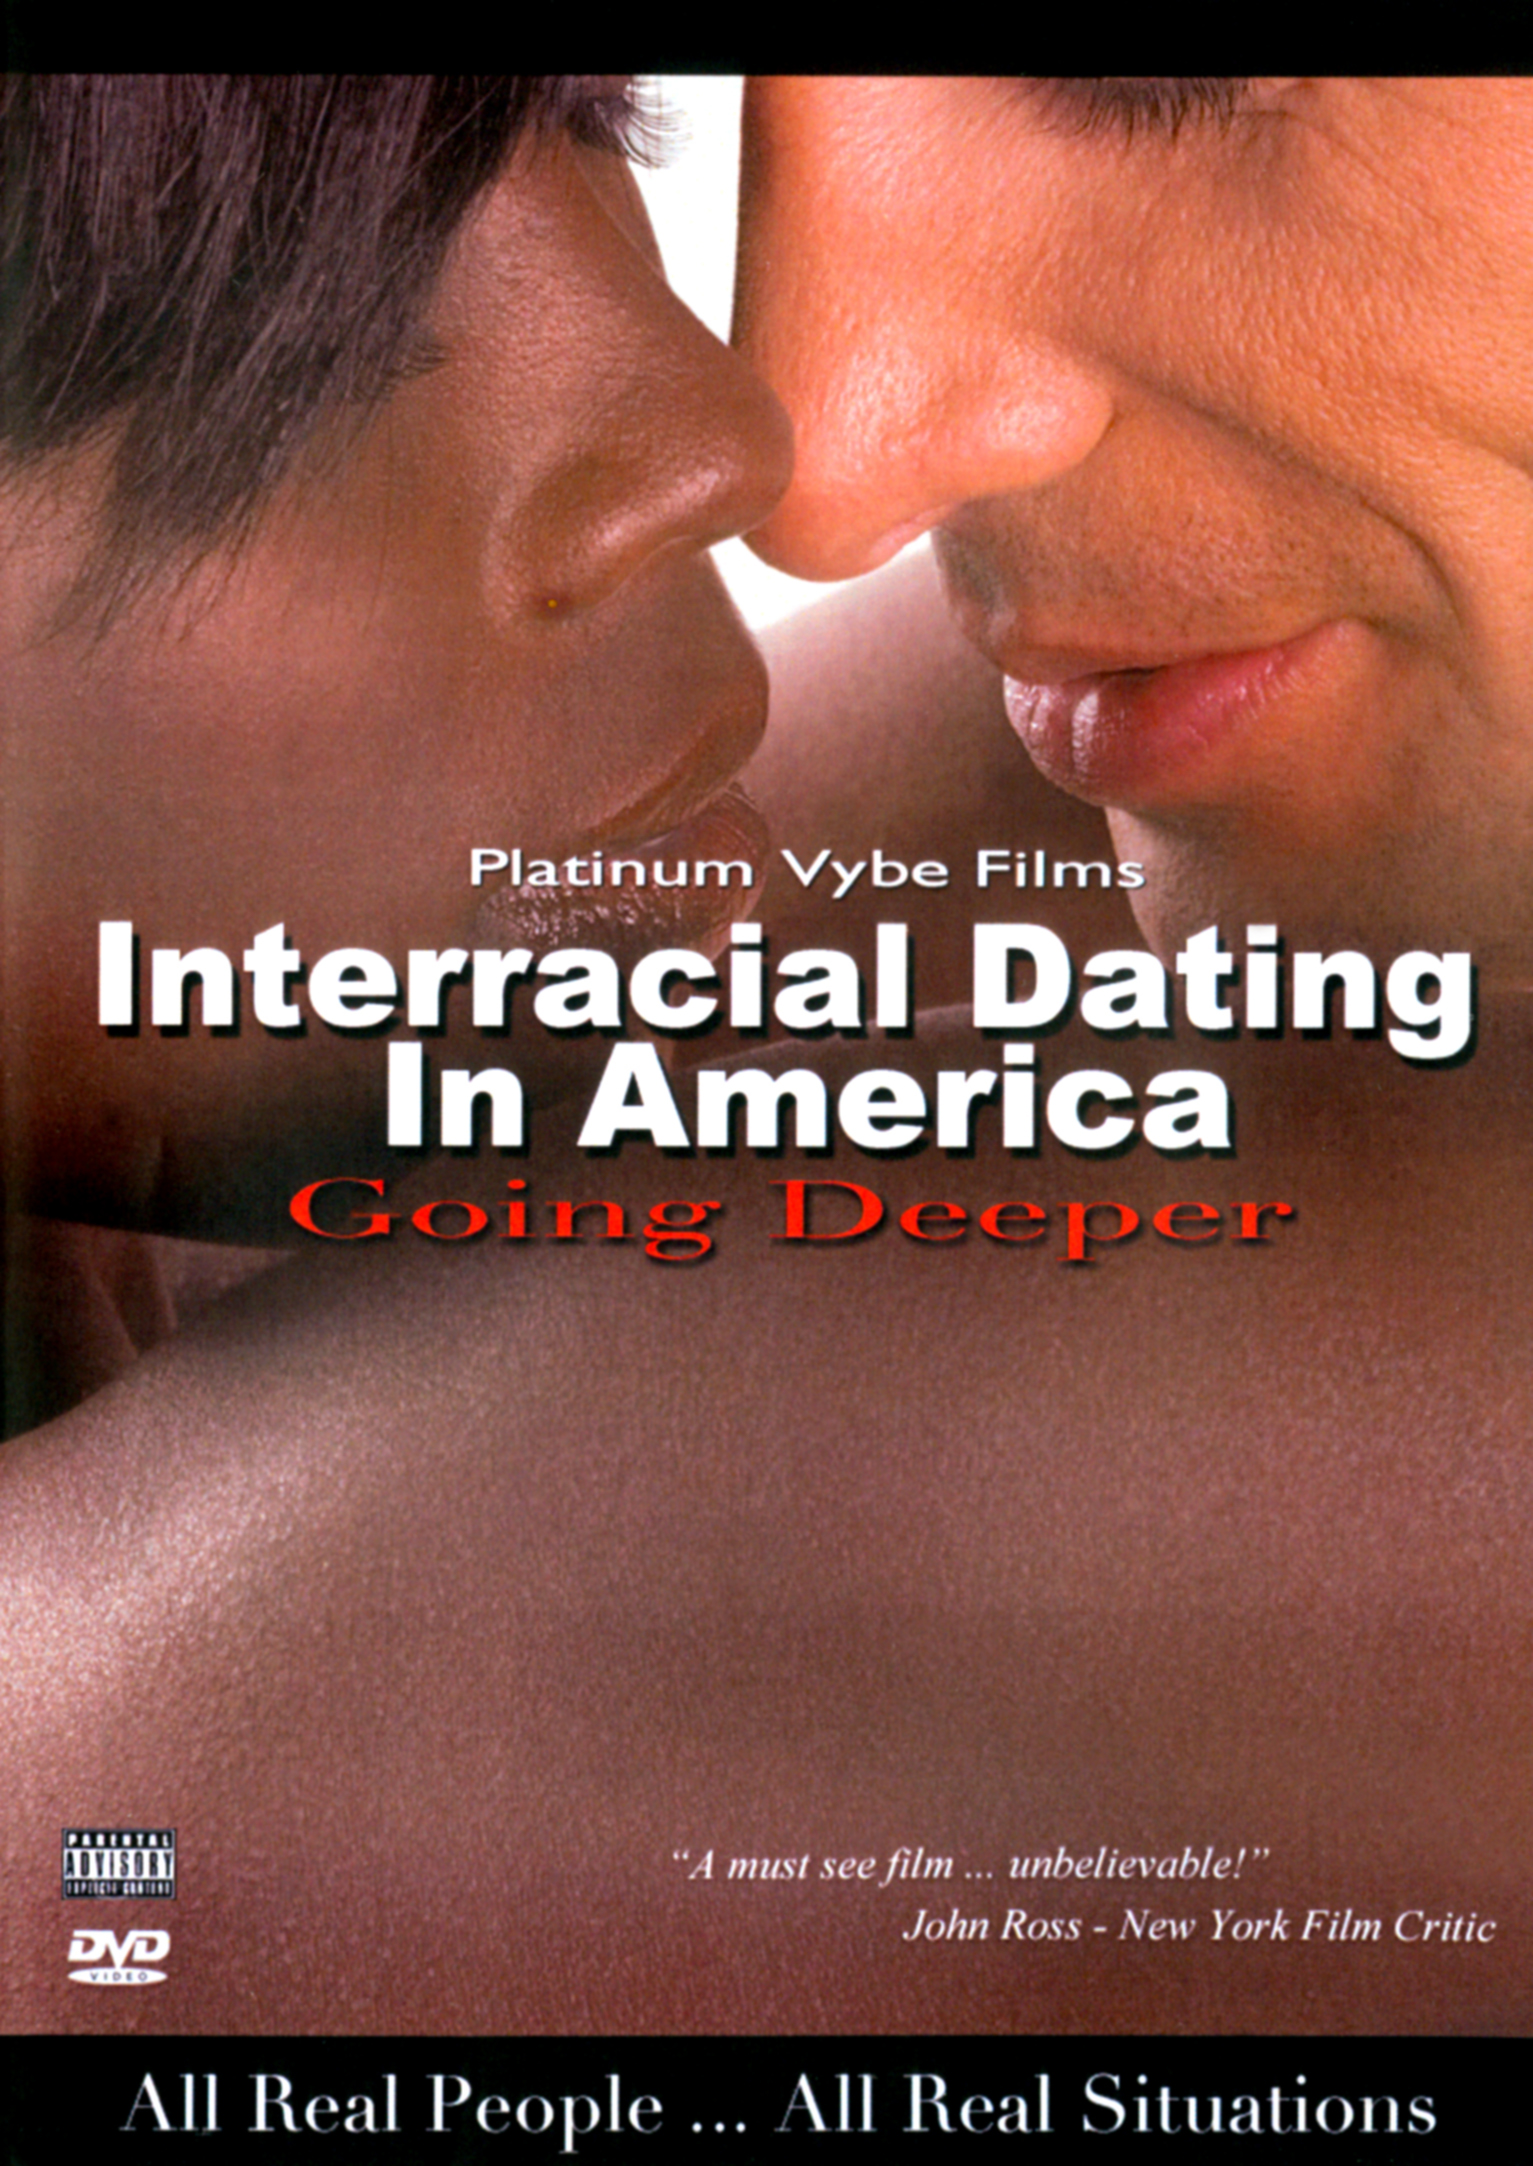 Interracial Dating in America: Going Deeper